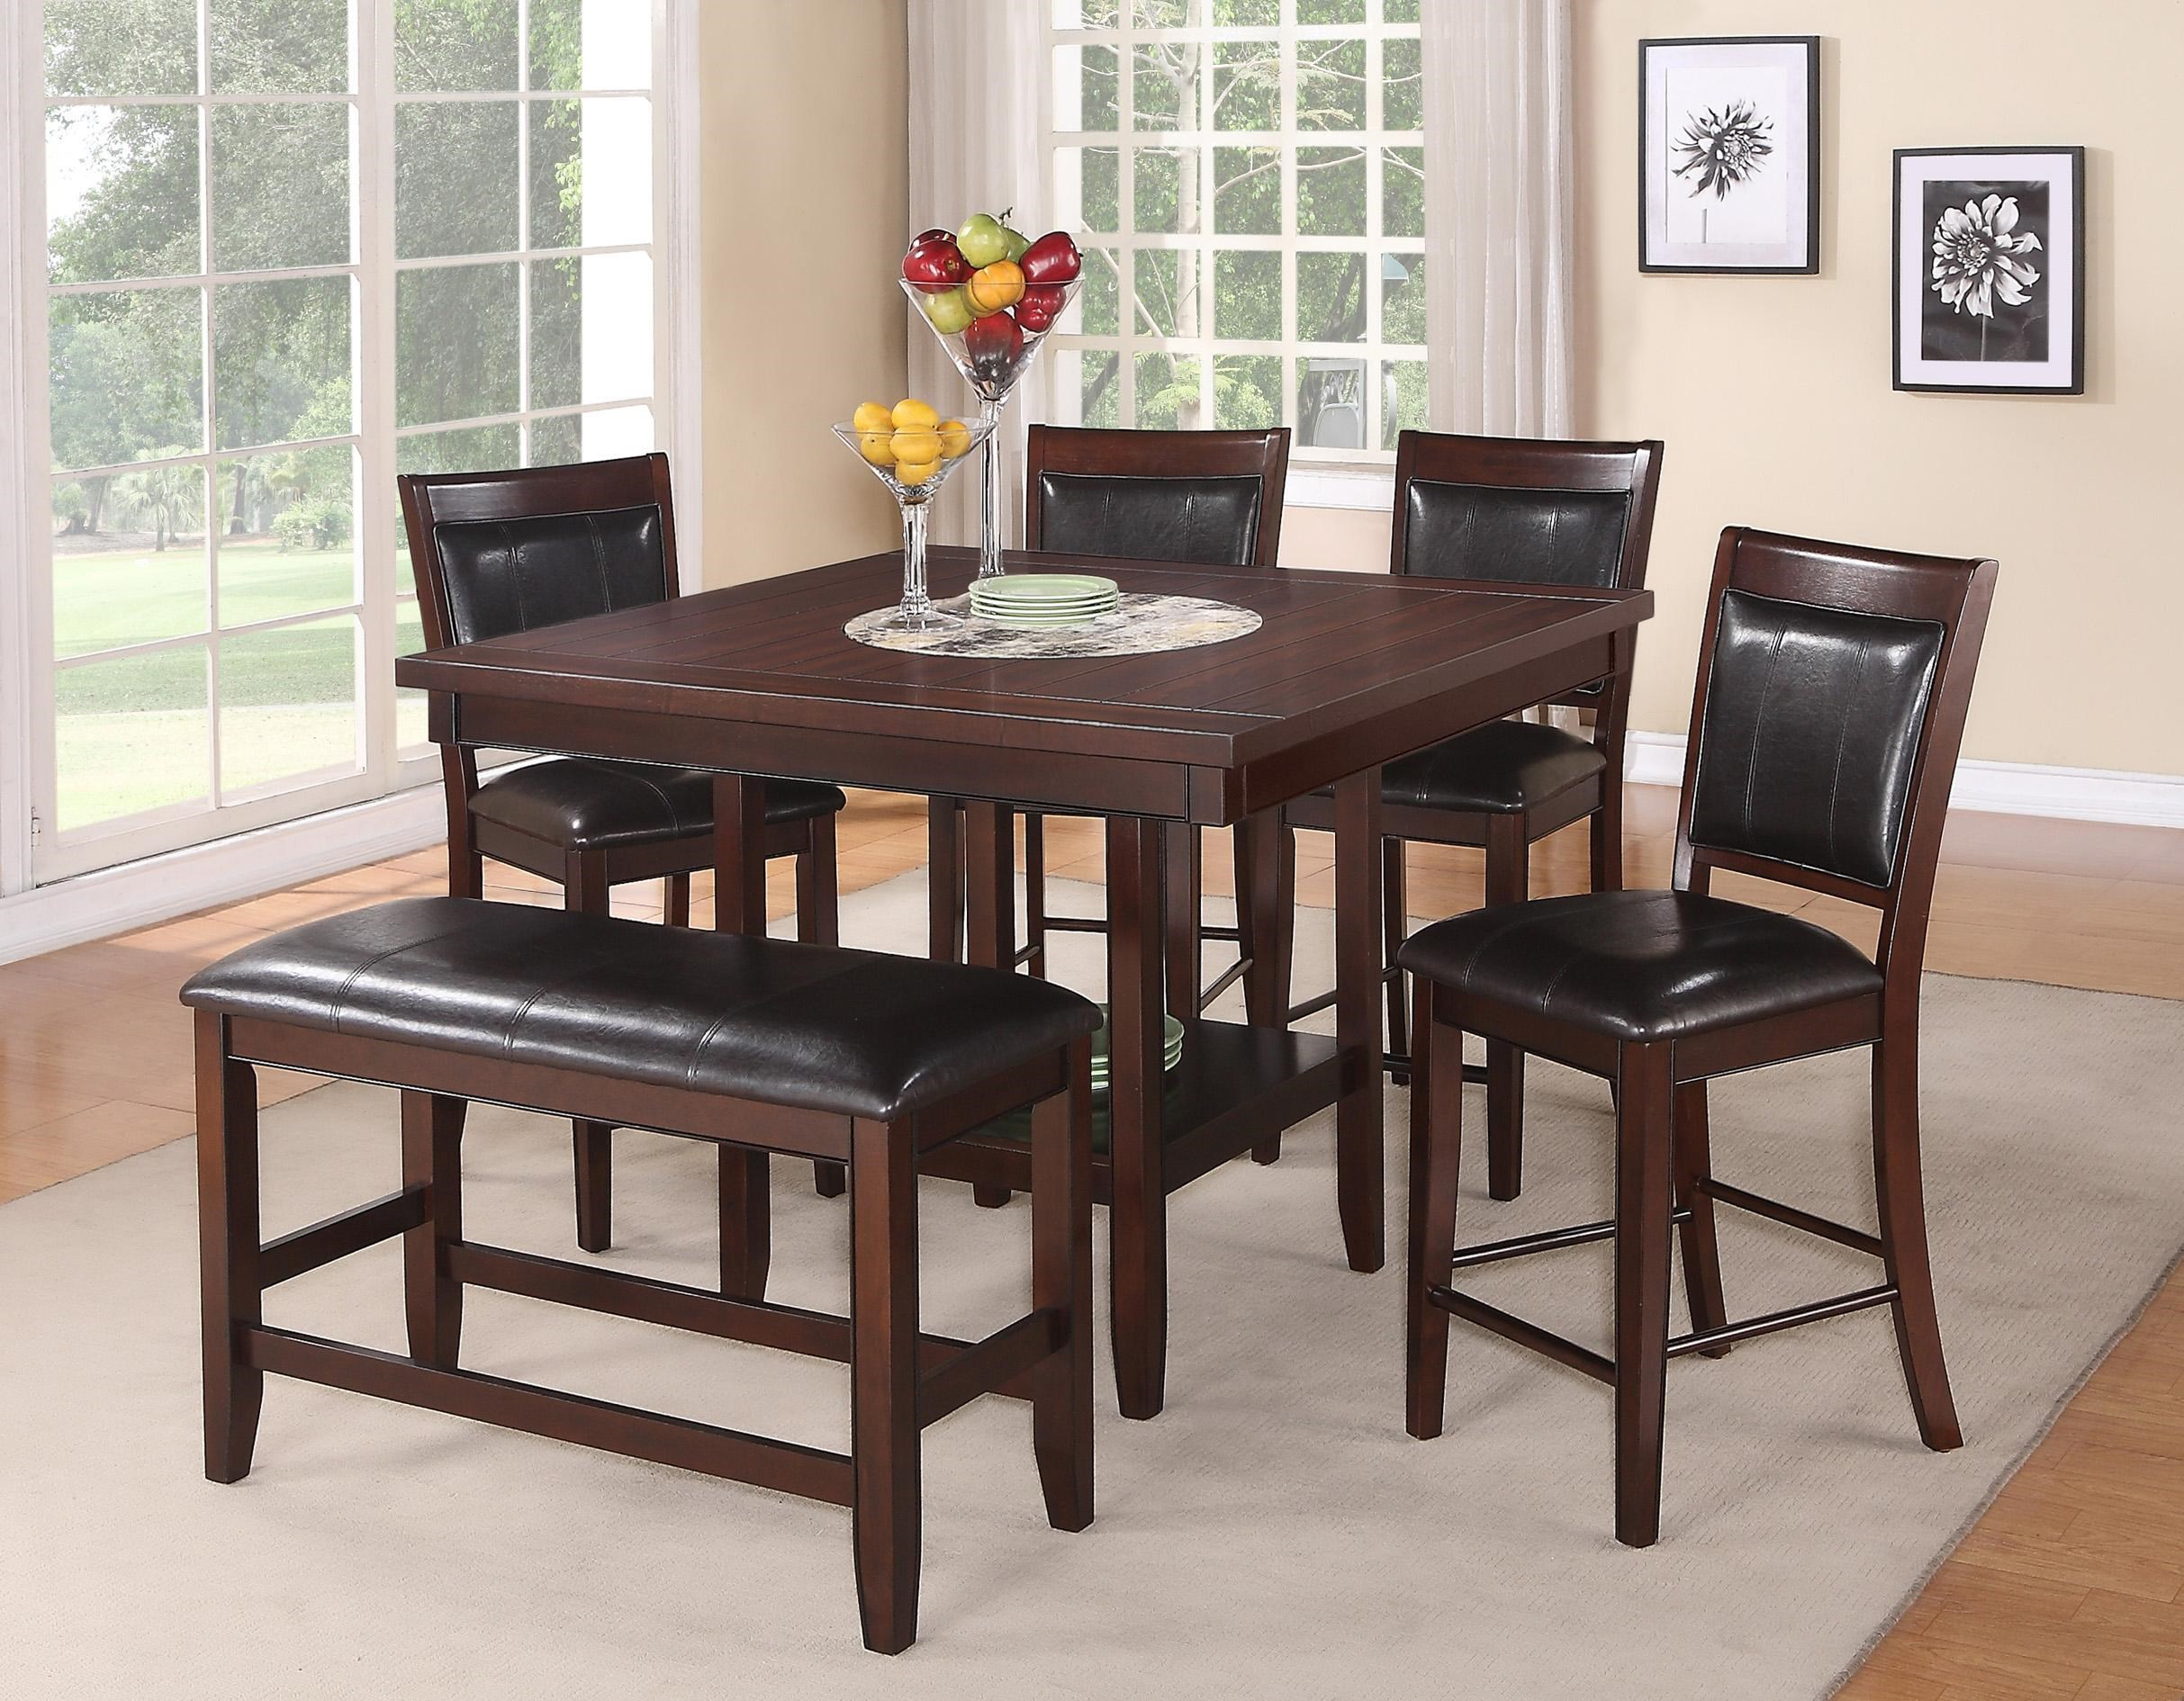 kitchen table chairs set outdoor plans crown mark fulton 6 pc counter height chair bench dunk bright furniture with